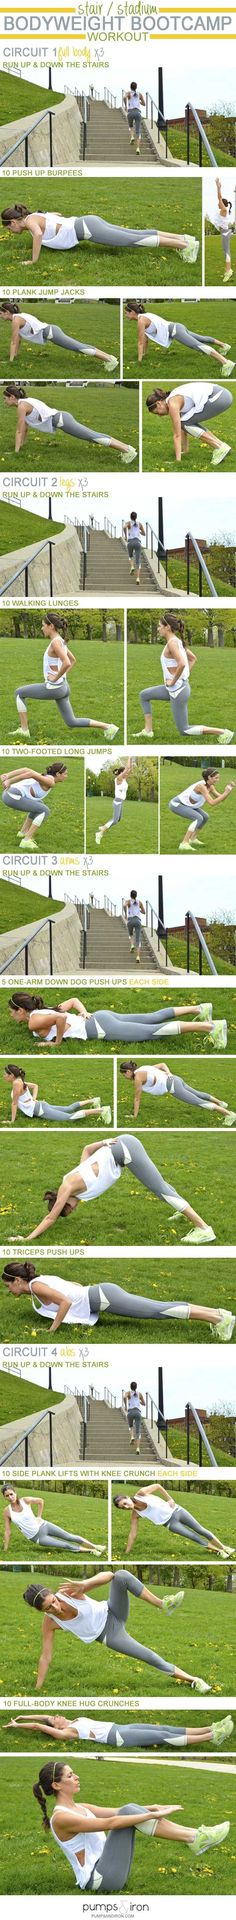 Stair/Stadium Bodyweight Bootcamp Workout For more workouts join my newsletter at www.custombodz.com #bootcampworkouts